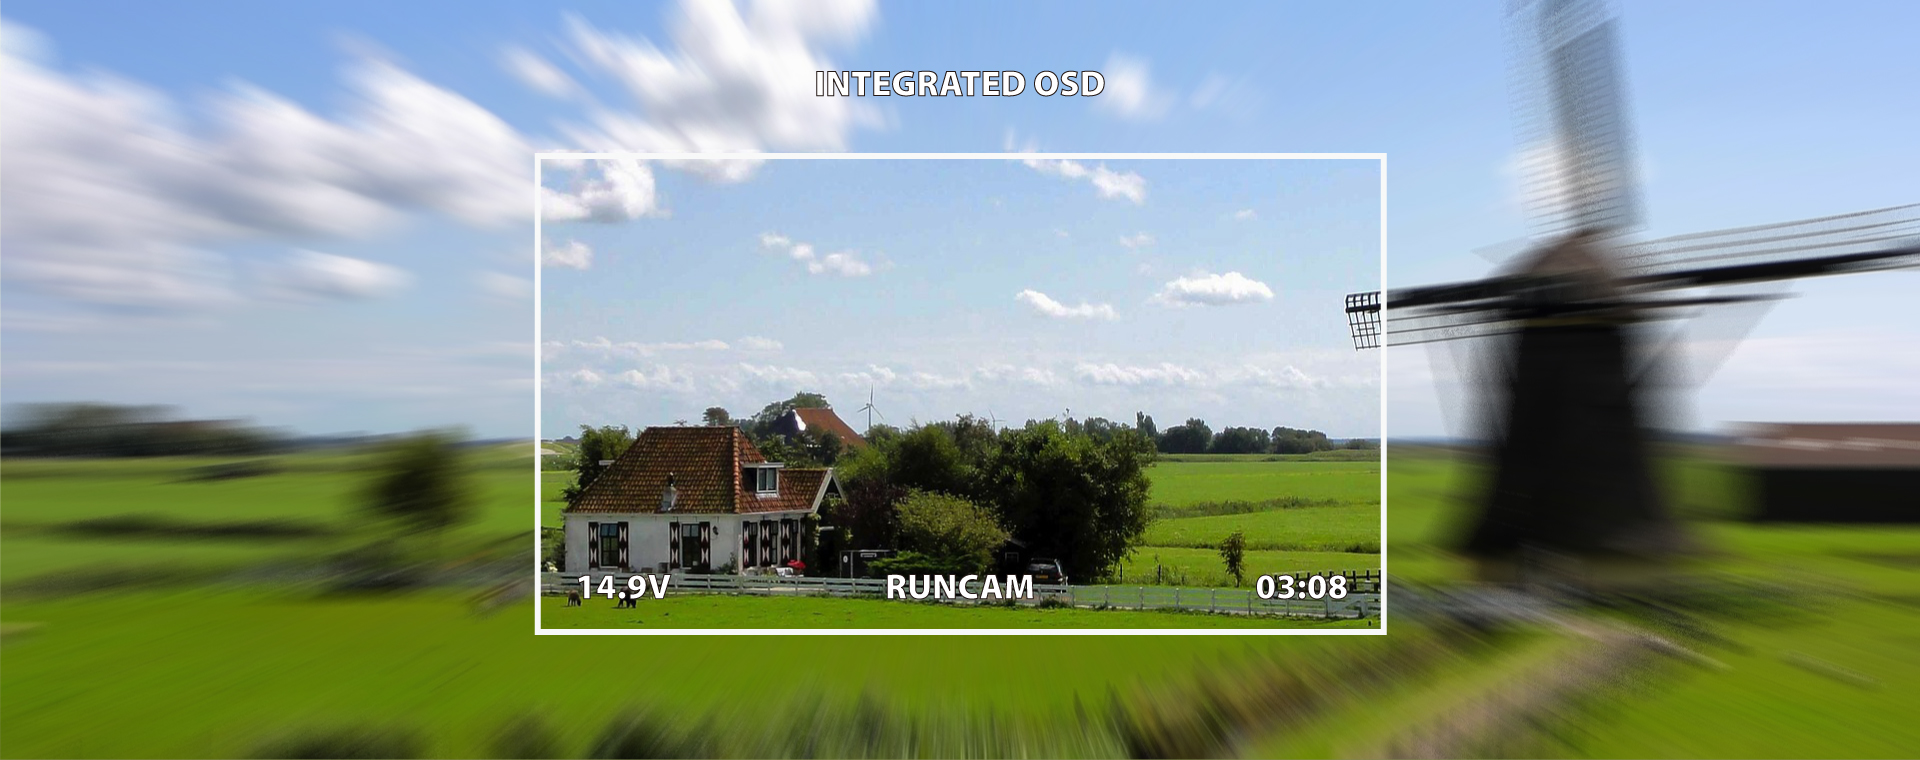 Runcam-integrated-OSD